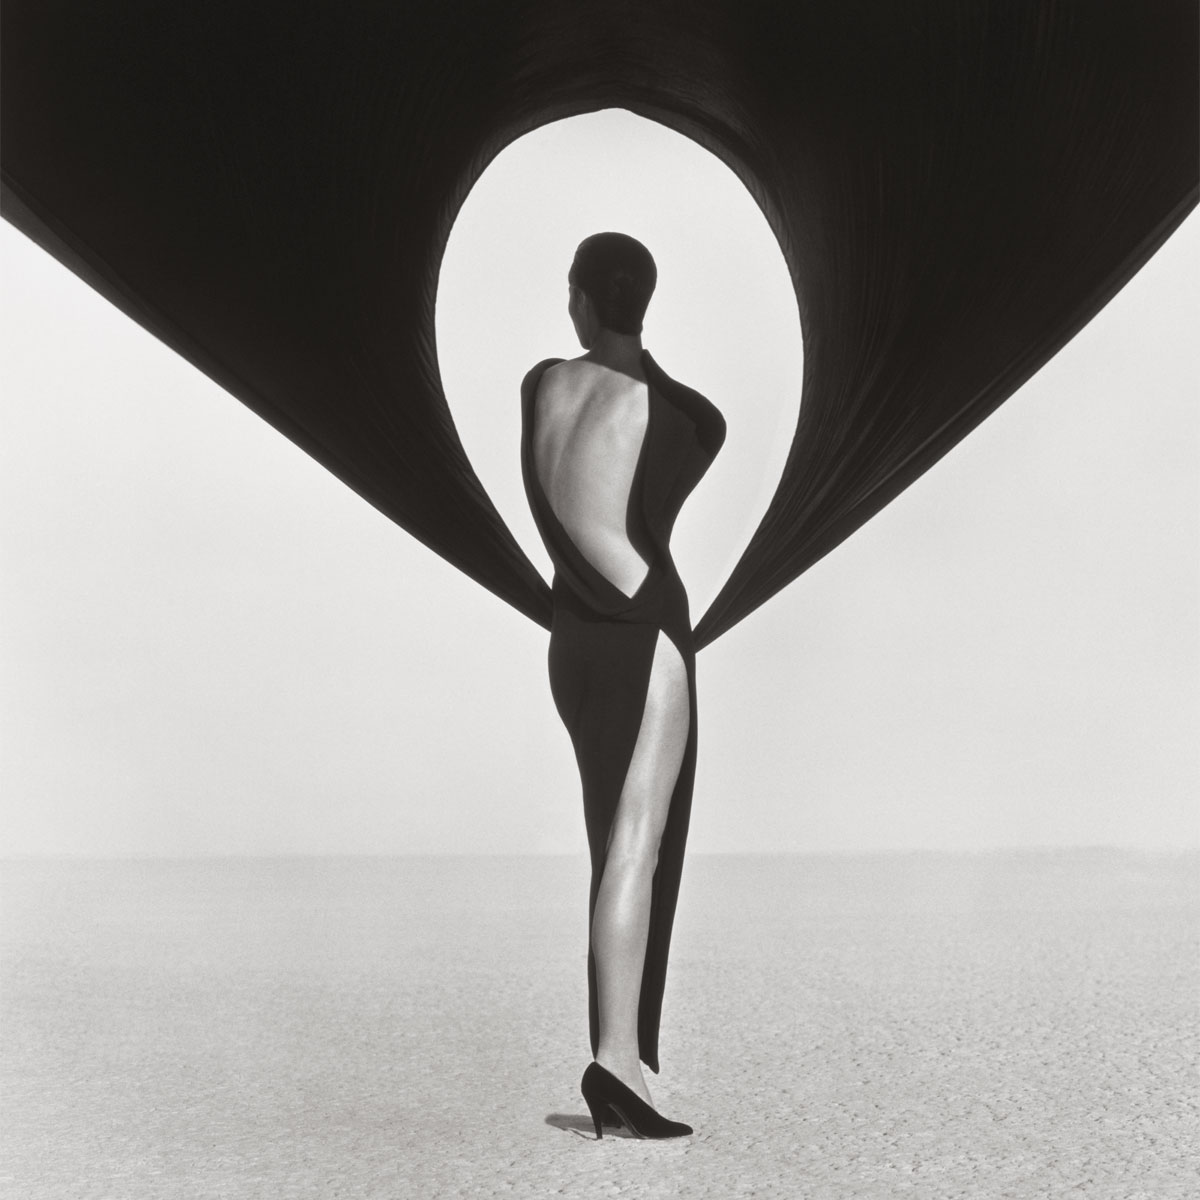 Herb Ritts: L.A. Style at Ringling Museum by Pamela Beck